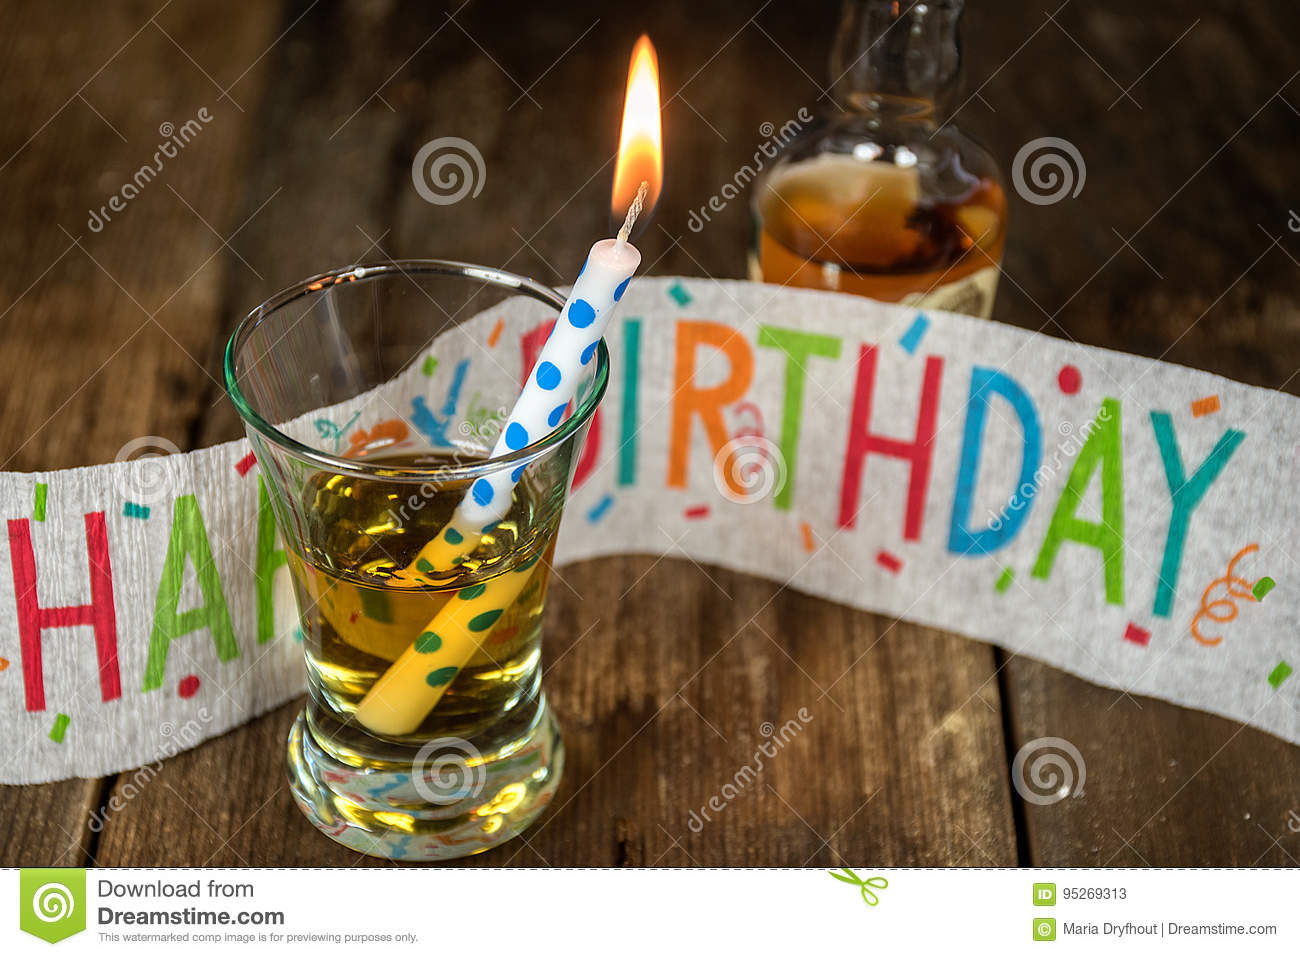 Birthday Candle And Whiskey In Shot Glass With Banner On Rustic Wood